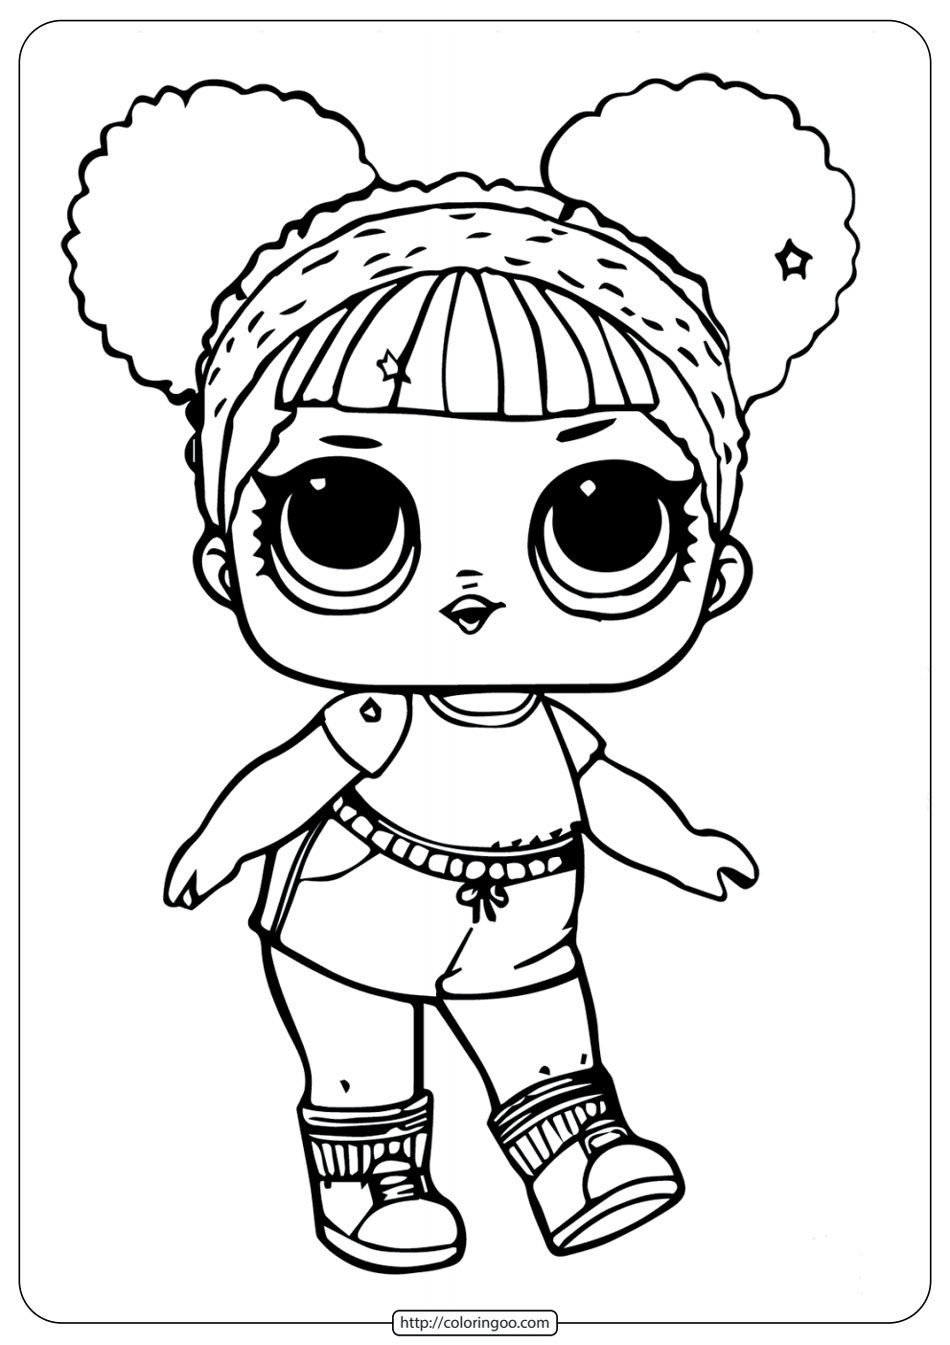 Coloring Pages Lol Dolls Kitty Coloring Hello Kitty Coloring Lol Dolls